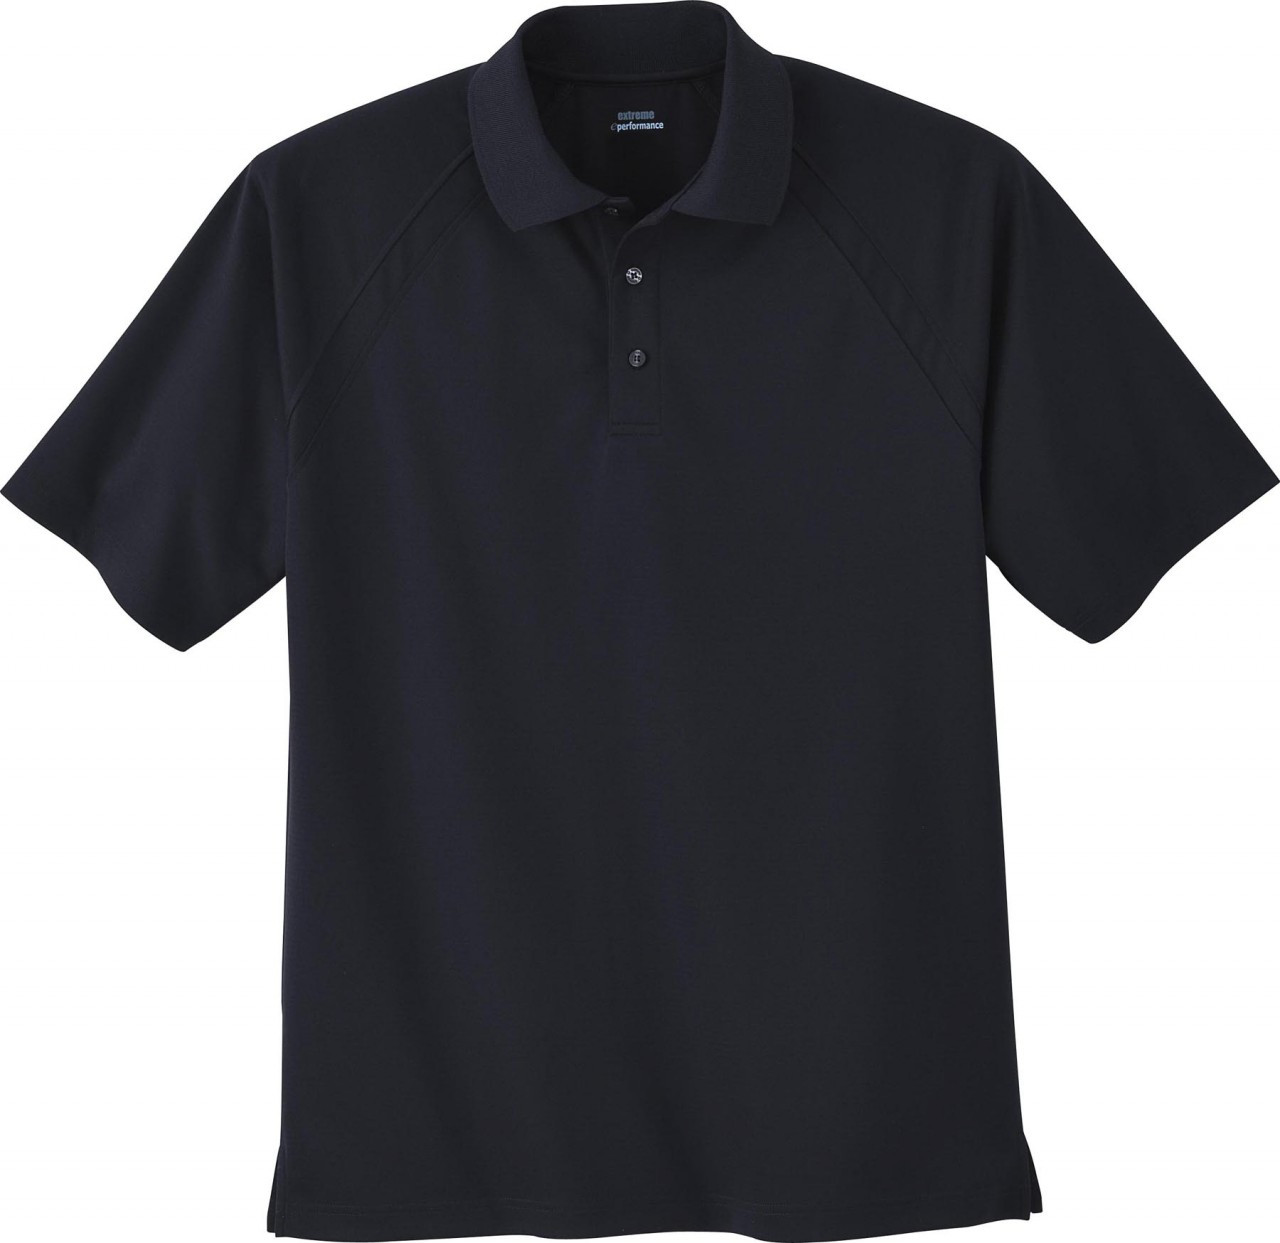 Black - 85093 Extreme Men's Eperformance™ Ottoman Textured Polo Shirt | BlankClothing.ca